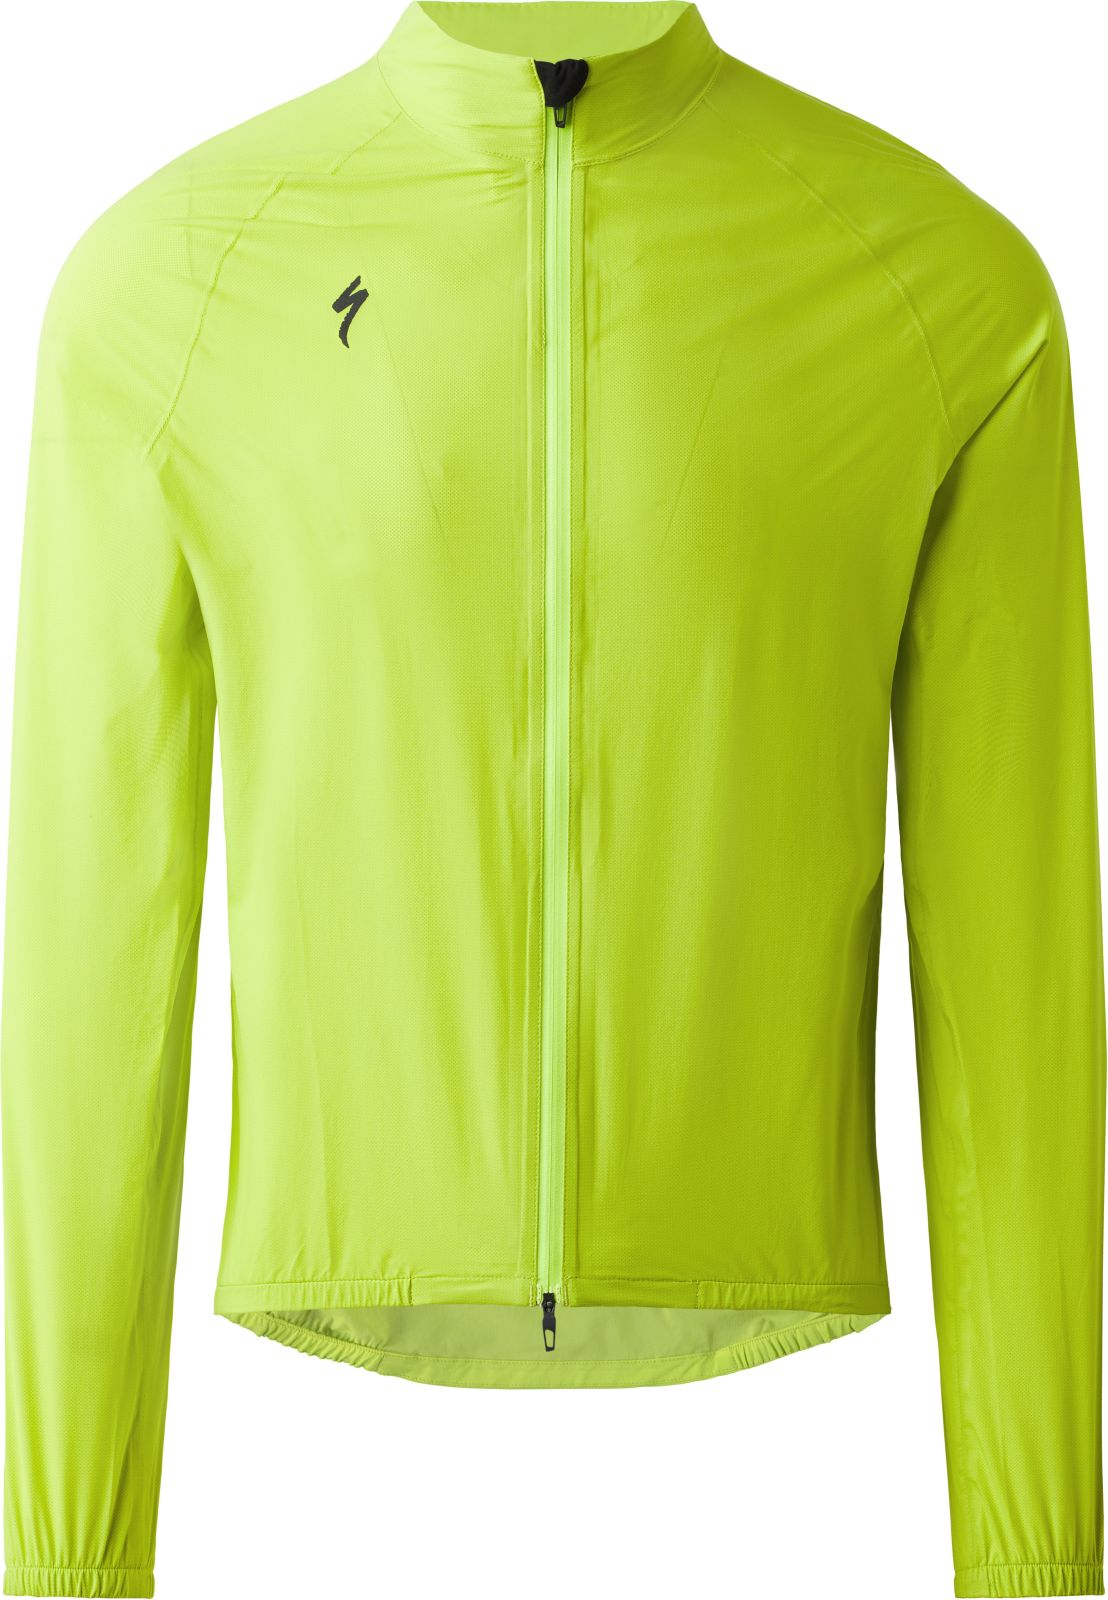 Specialized Deflect H2O Pac Jacket - hyper green XL